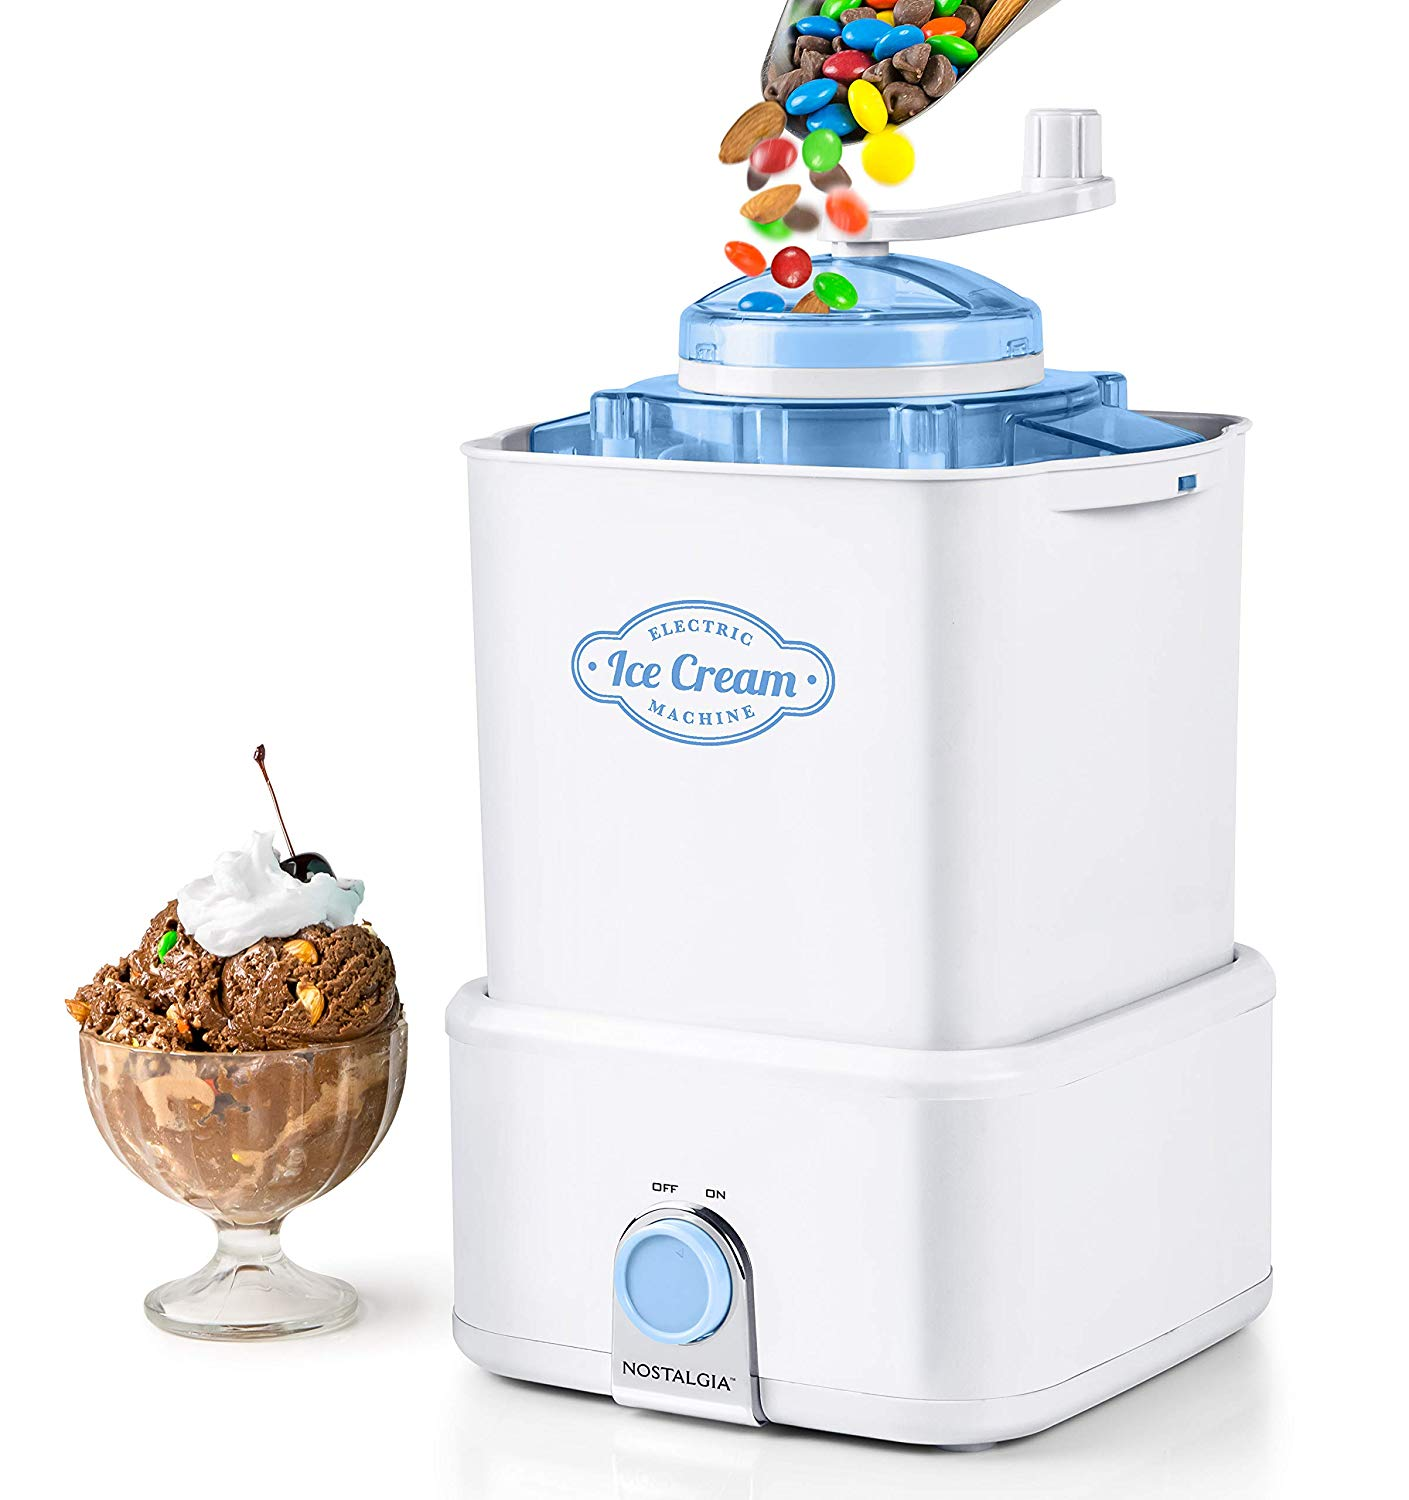 Nostalgia CICM2WB Ice Cream Maker